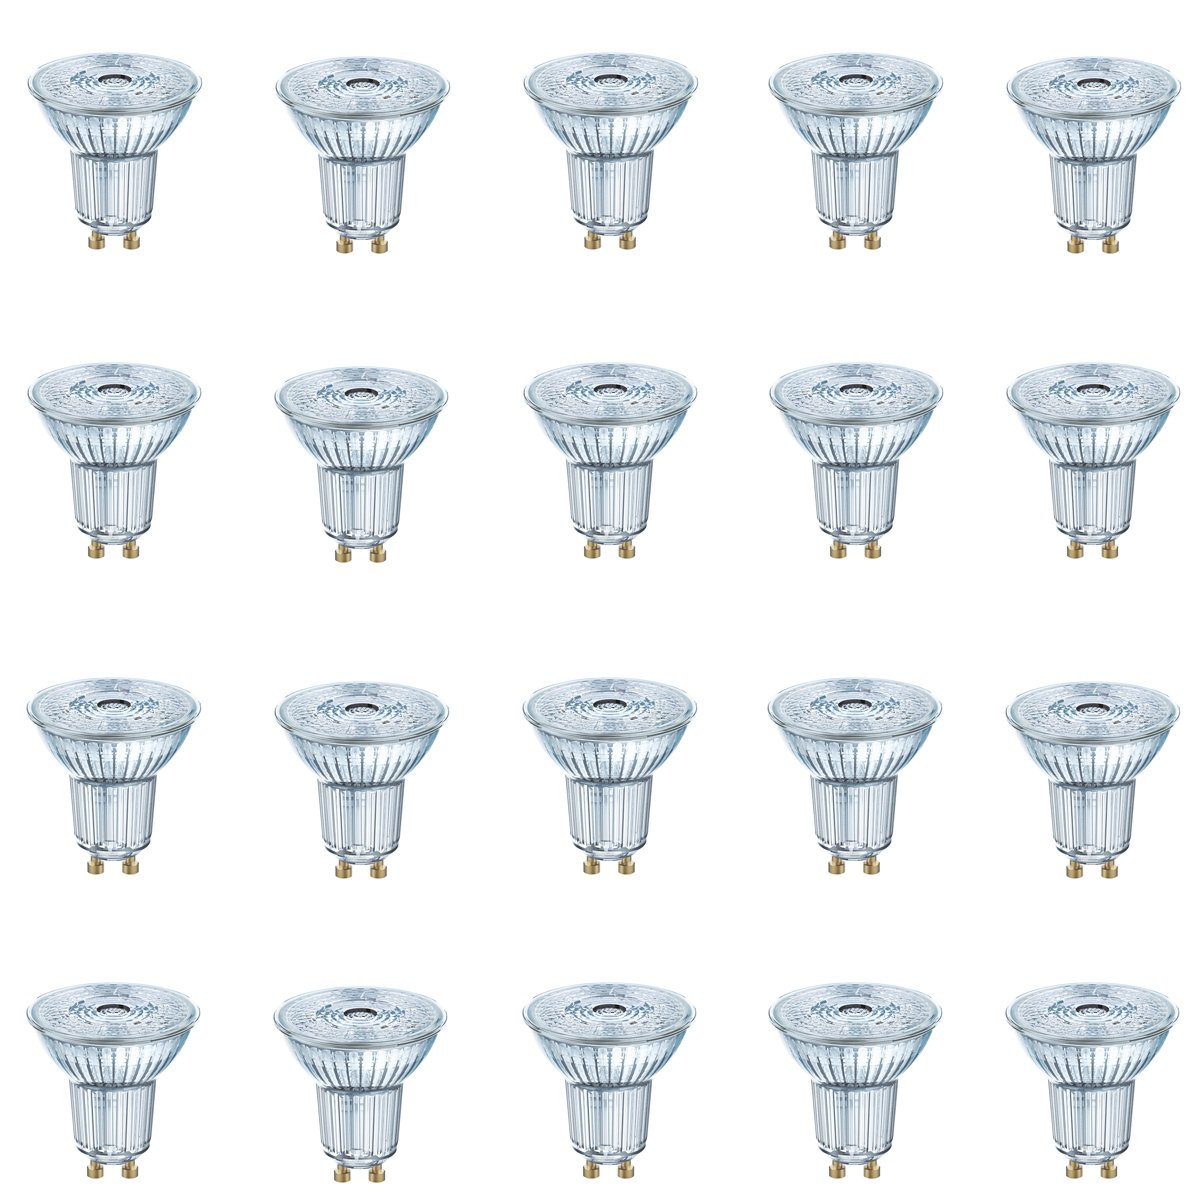 20er Pack LED Glas-Spot OSRAM GU10 3,1W (35W) 230 Lumen 36° warm Weiß dimmable